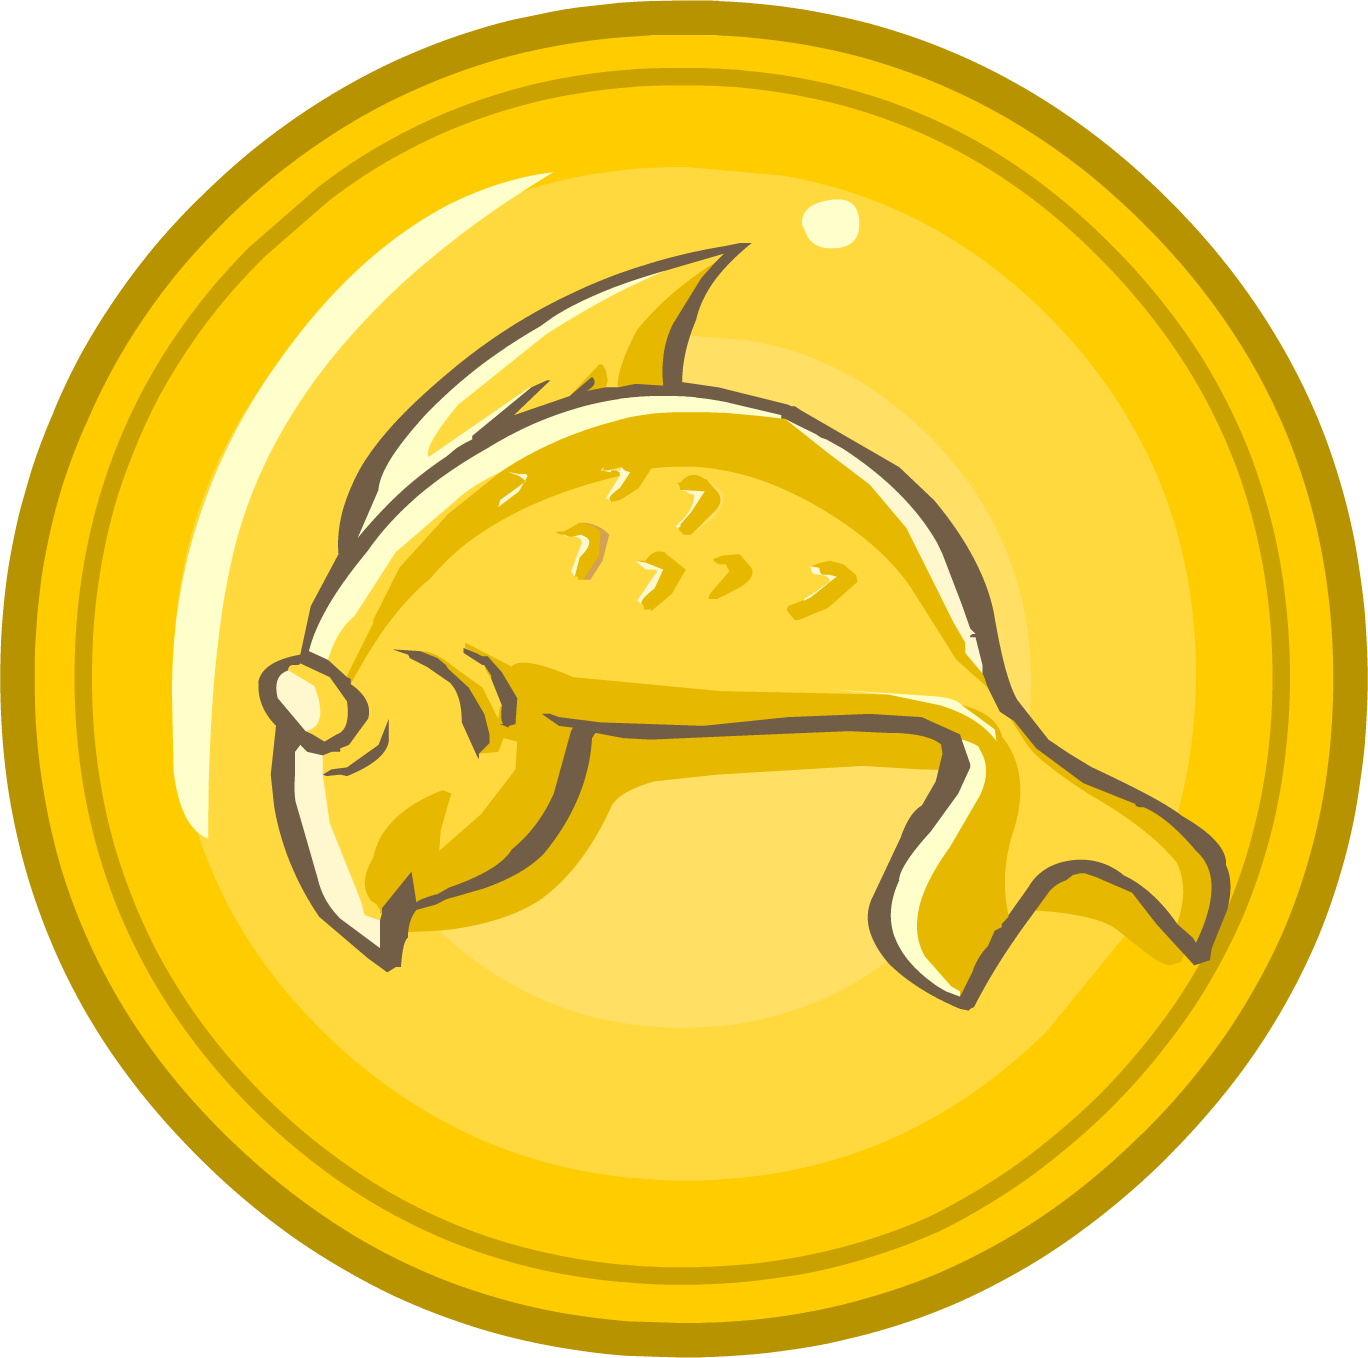 Png coin. Image puffle rescue club